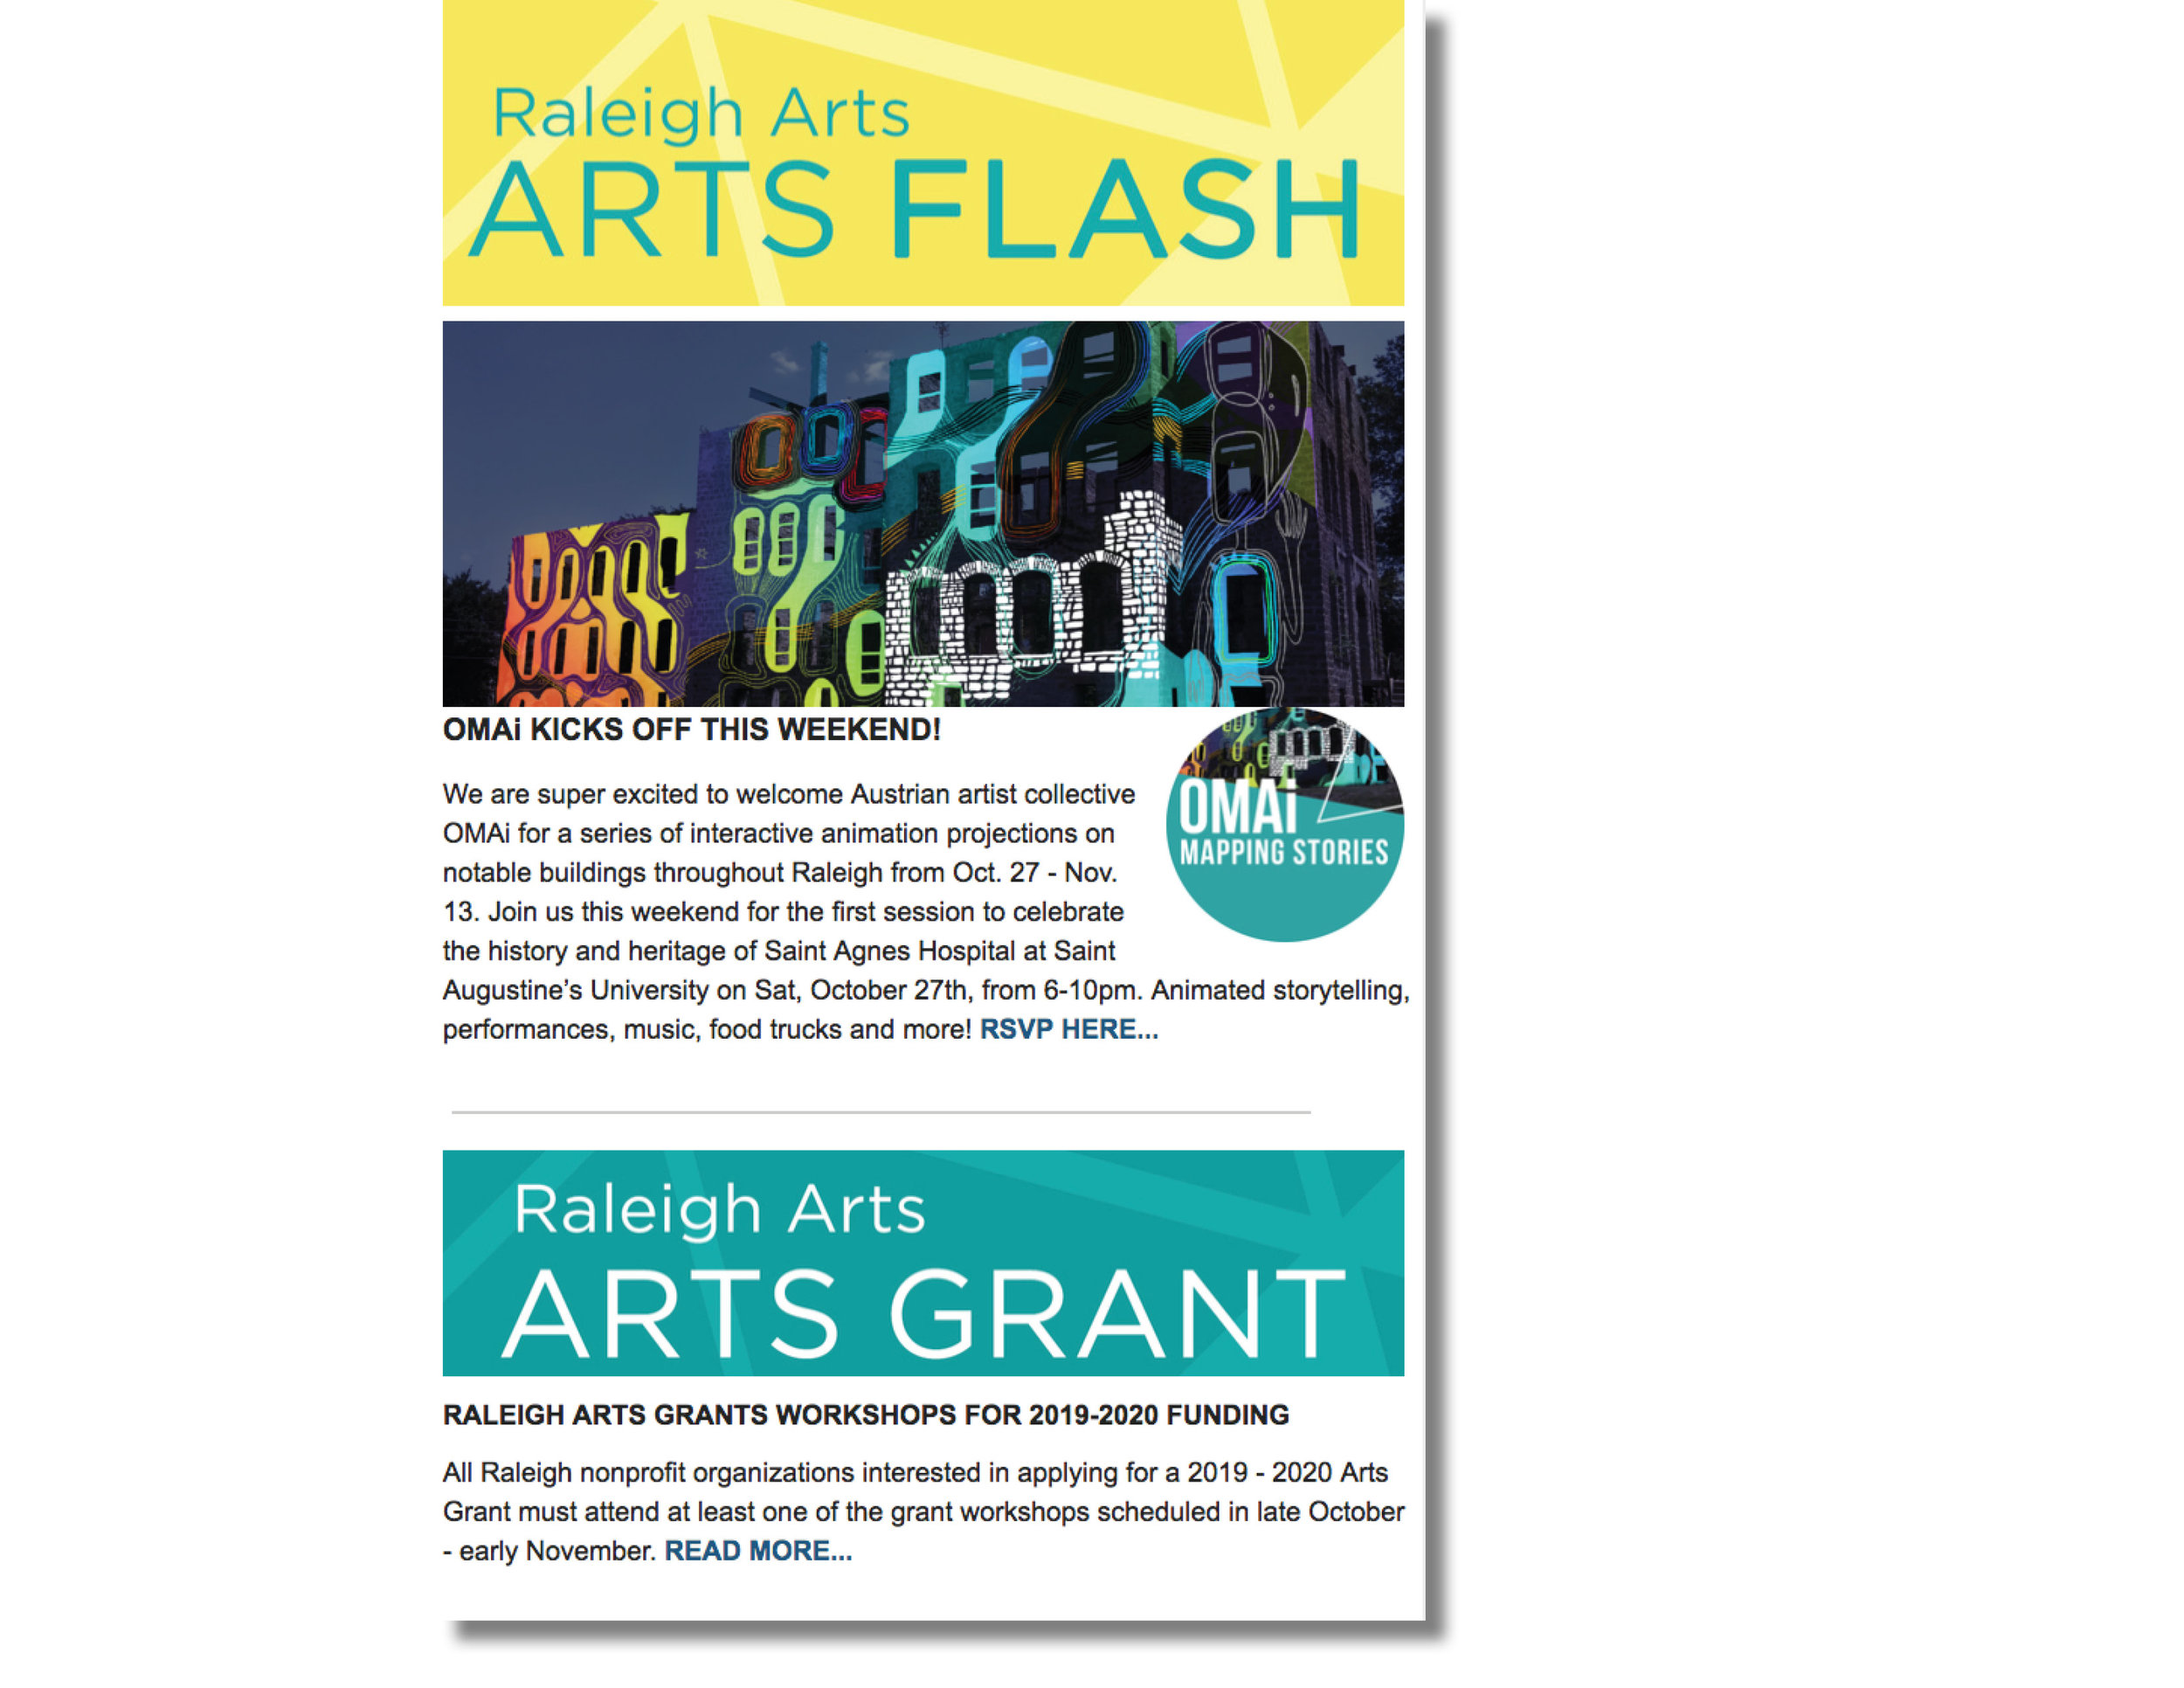 Newsletter - I continued Raleigh Arts' voice in the newsletter, refined the content, simplified the layout and extended the branding. Open rates increased within the first 2 months.